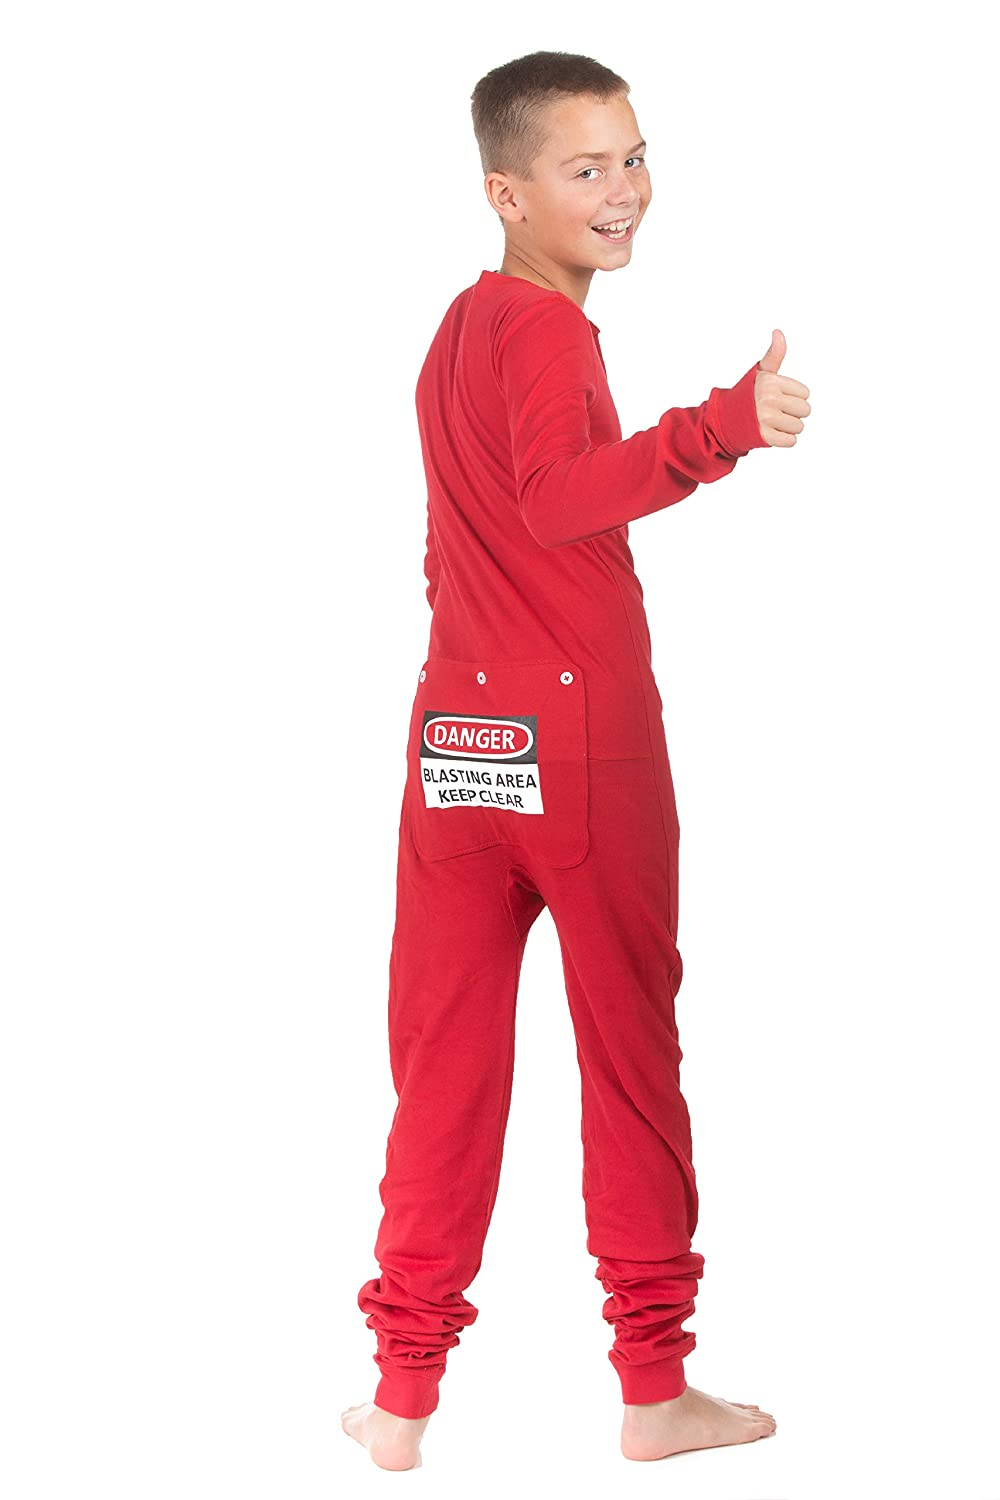 51e6e8092c Amazon.com  Red Union Suit Boys   Girls Kids Pajamas Danger Blast Area Sign  on Rear Flap